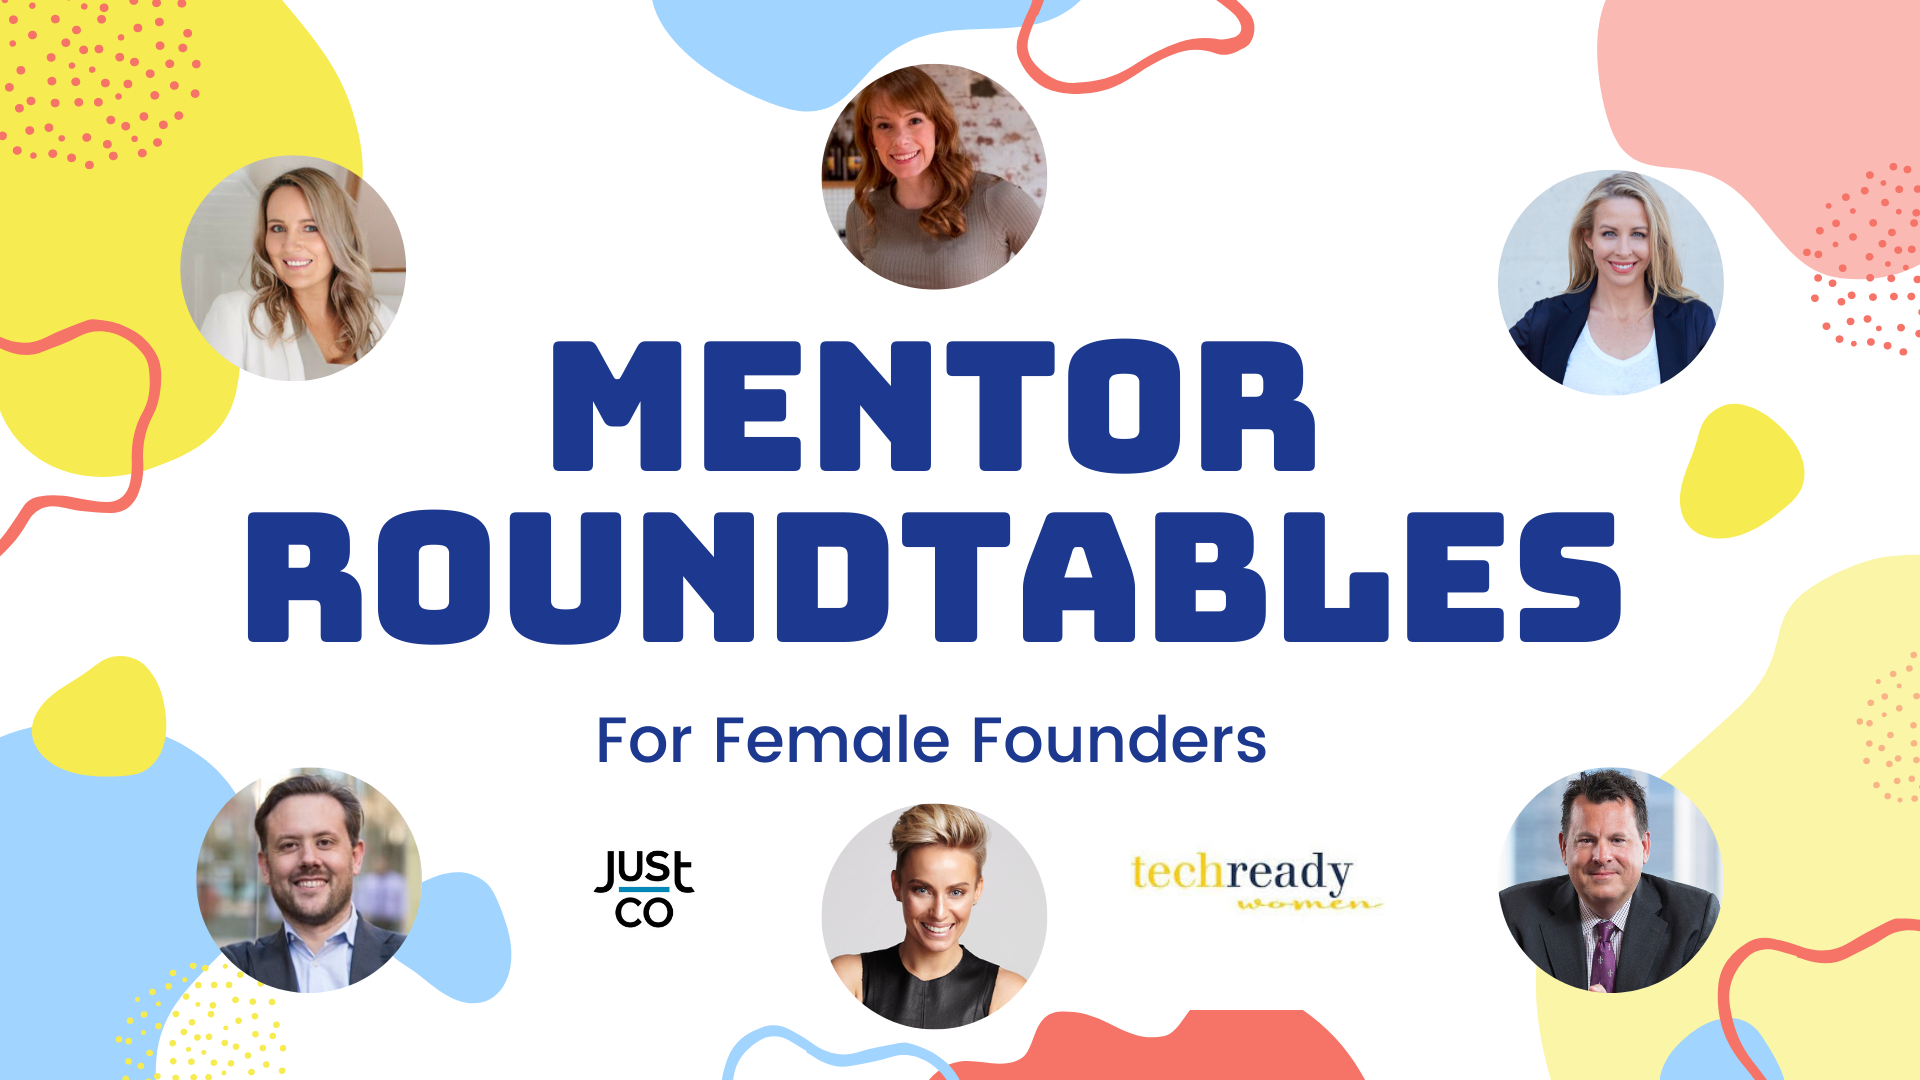 Mentor Roundtables For Female Founders